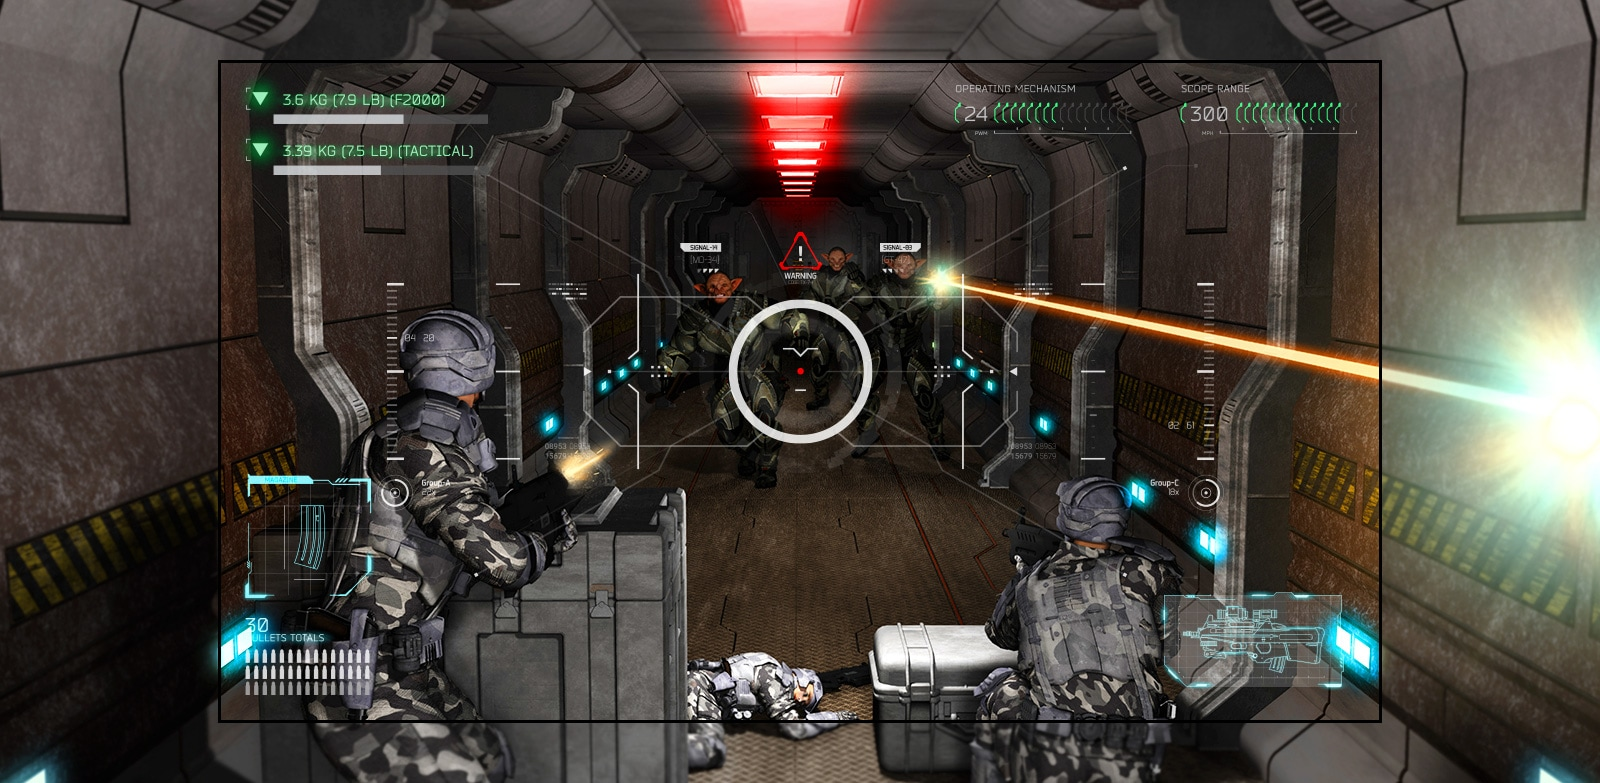 TV showing a scene from a shooting game where the player is overpowered by aliens with guns.